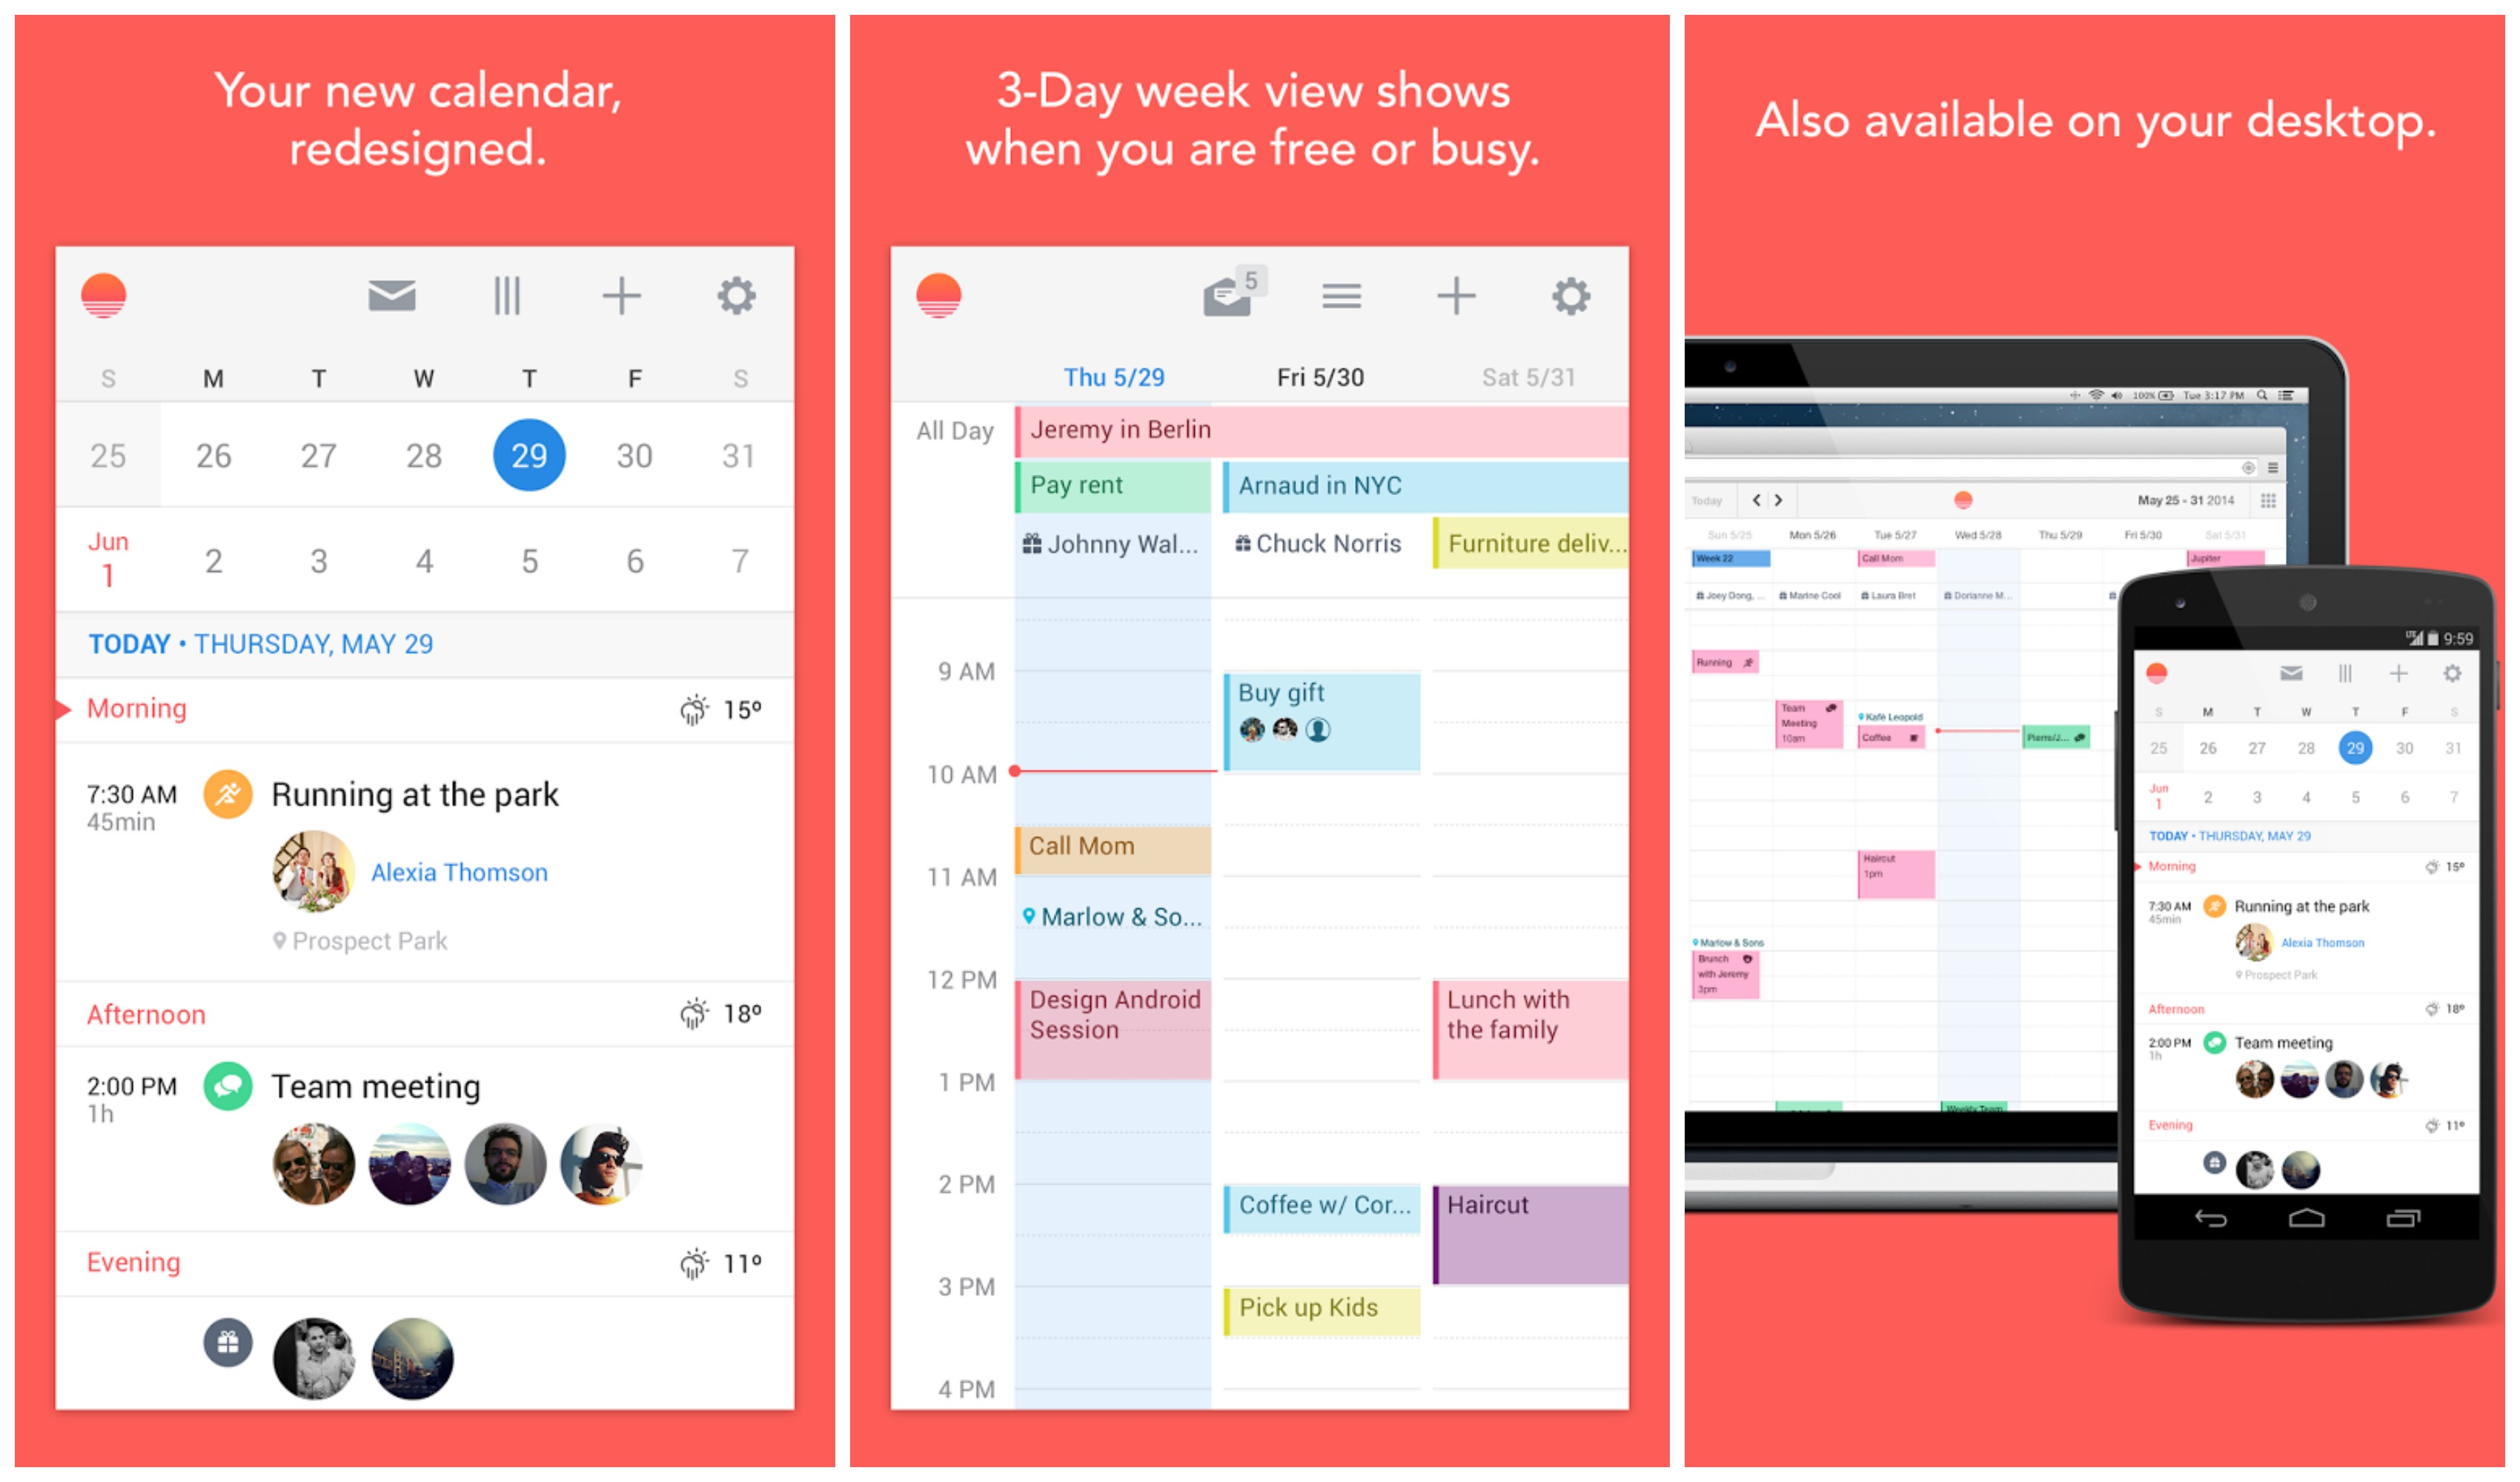 how to know who edited a cell in google calendar